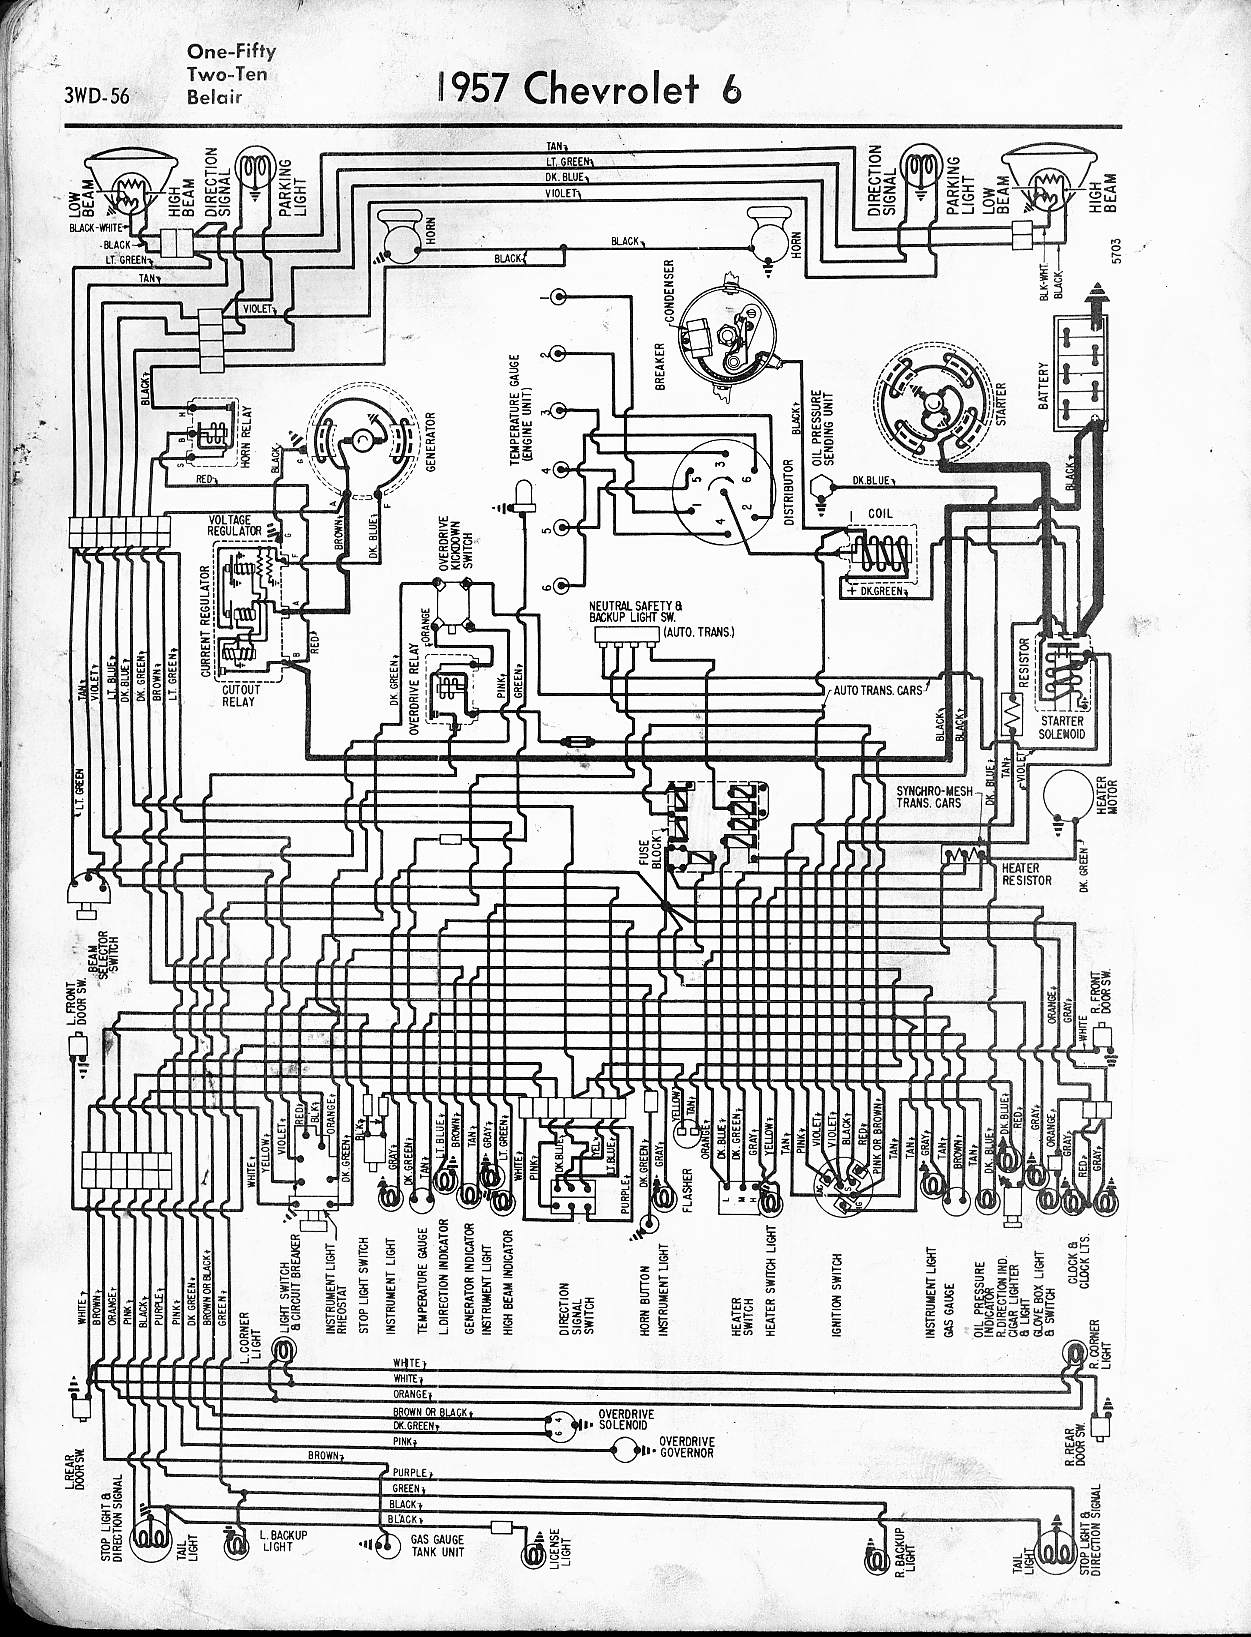 55 chevy engine wiring harness schematics wiring diagrams u2022 rh seniorlivinguniversity co 1991 Chevy Truck Wiring Harness 1991 Chevy 1500 Wiring Diagram